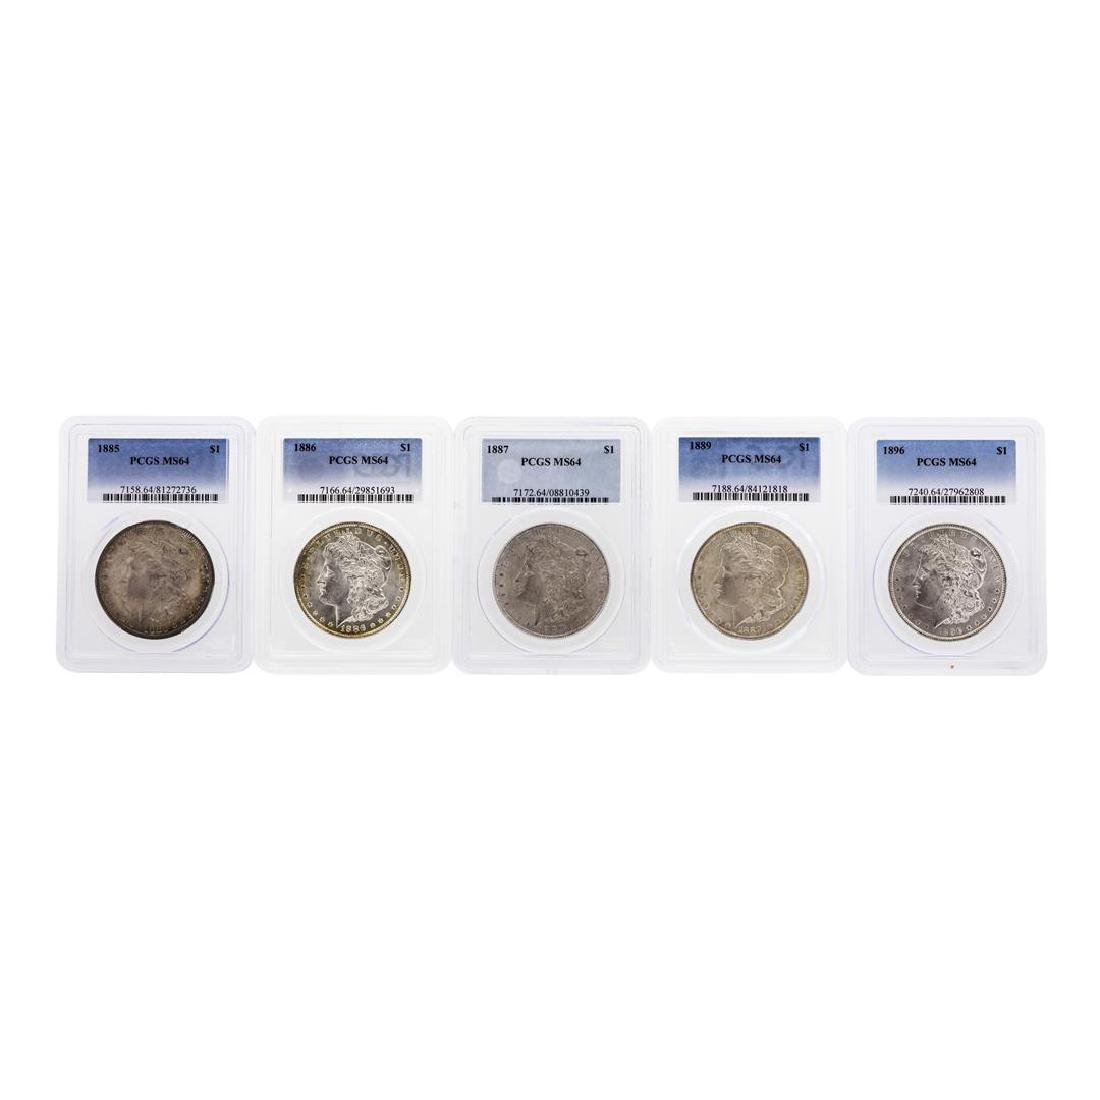 Lot of (5) Assorted Philadelphia Mint $1 Morgan Silver